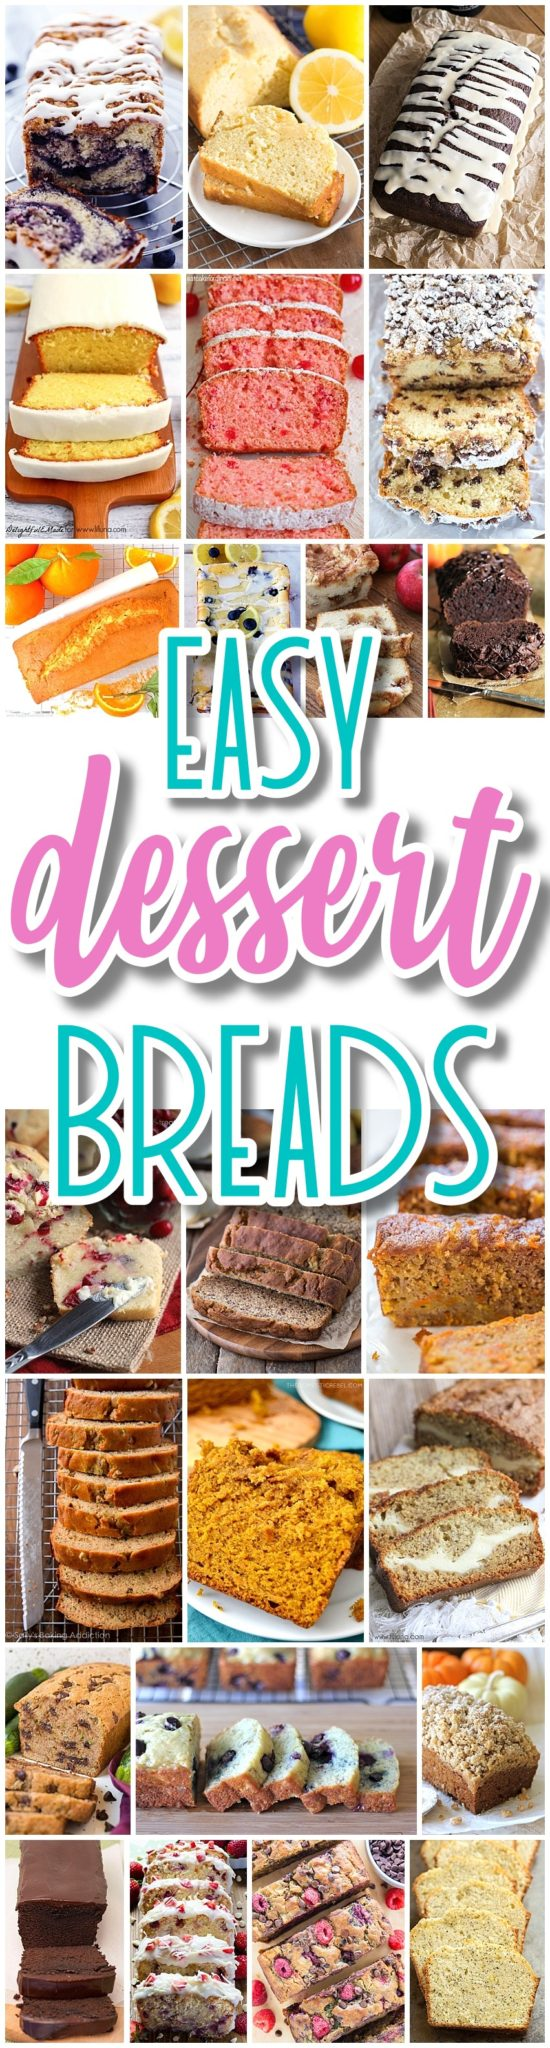 The BEST Easy Dessert Breads Recipes - Quick Breads and Loaf Pan Treats Recipes in all your favorite sweet and yummy flavors - Dreaming in DIY